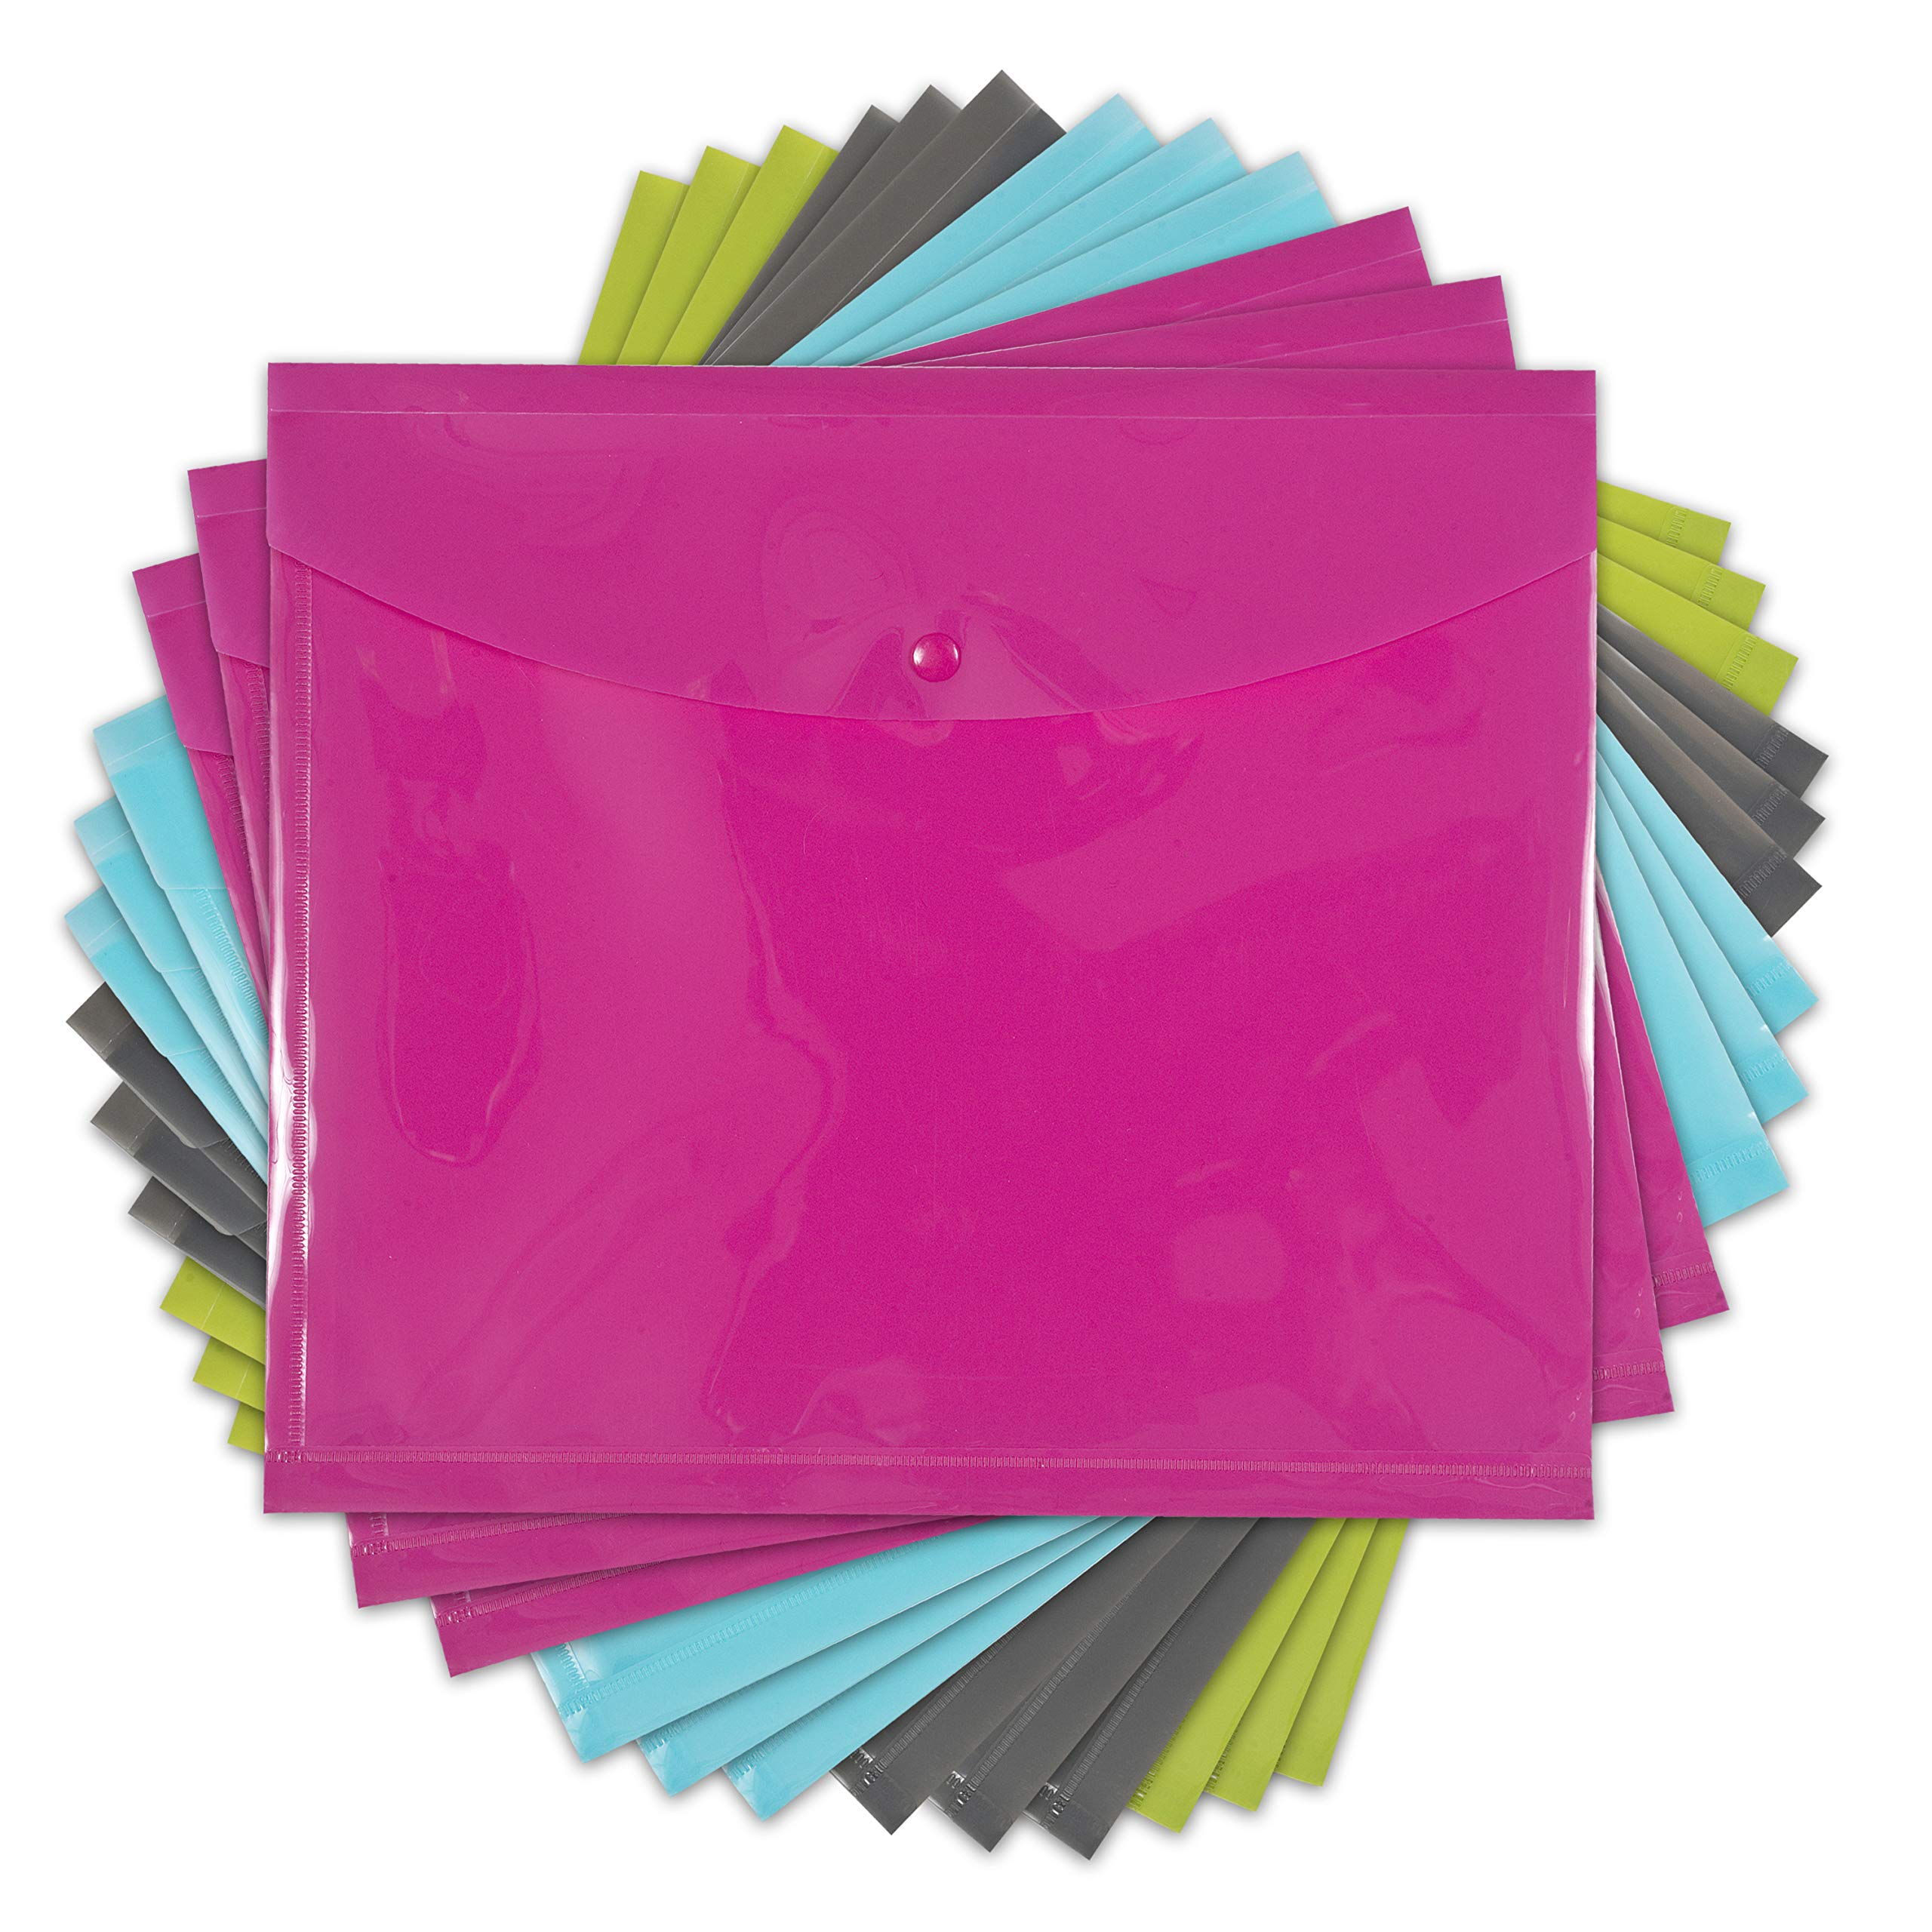 DocIt Reusable Side Open Envelopes with Snap Button Closure, 10'' x 11 3/4'', Assorted 12-Pack, 3 Each of Pink, Blue, Green and Grey (00891-C)